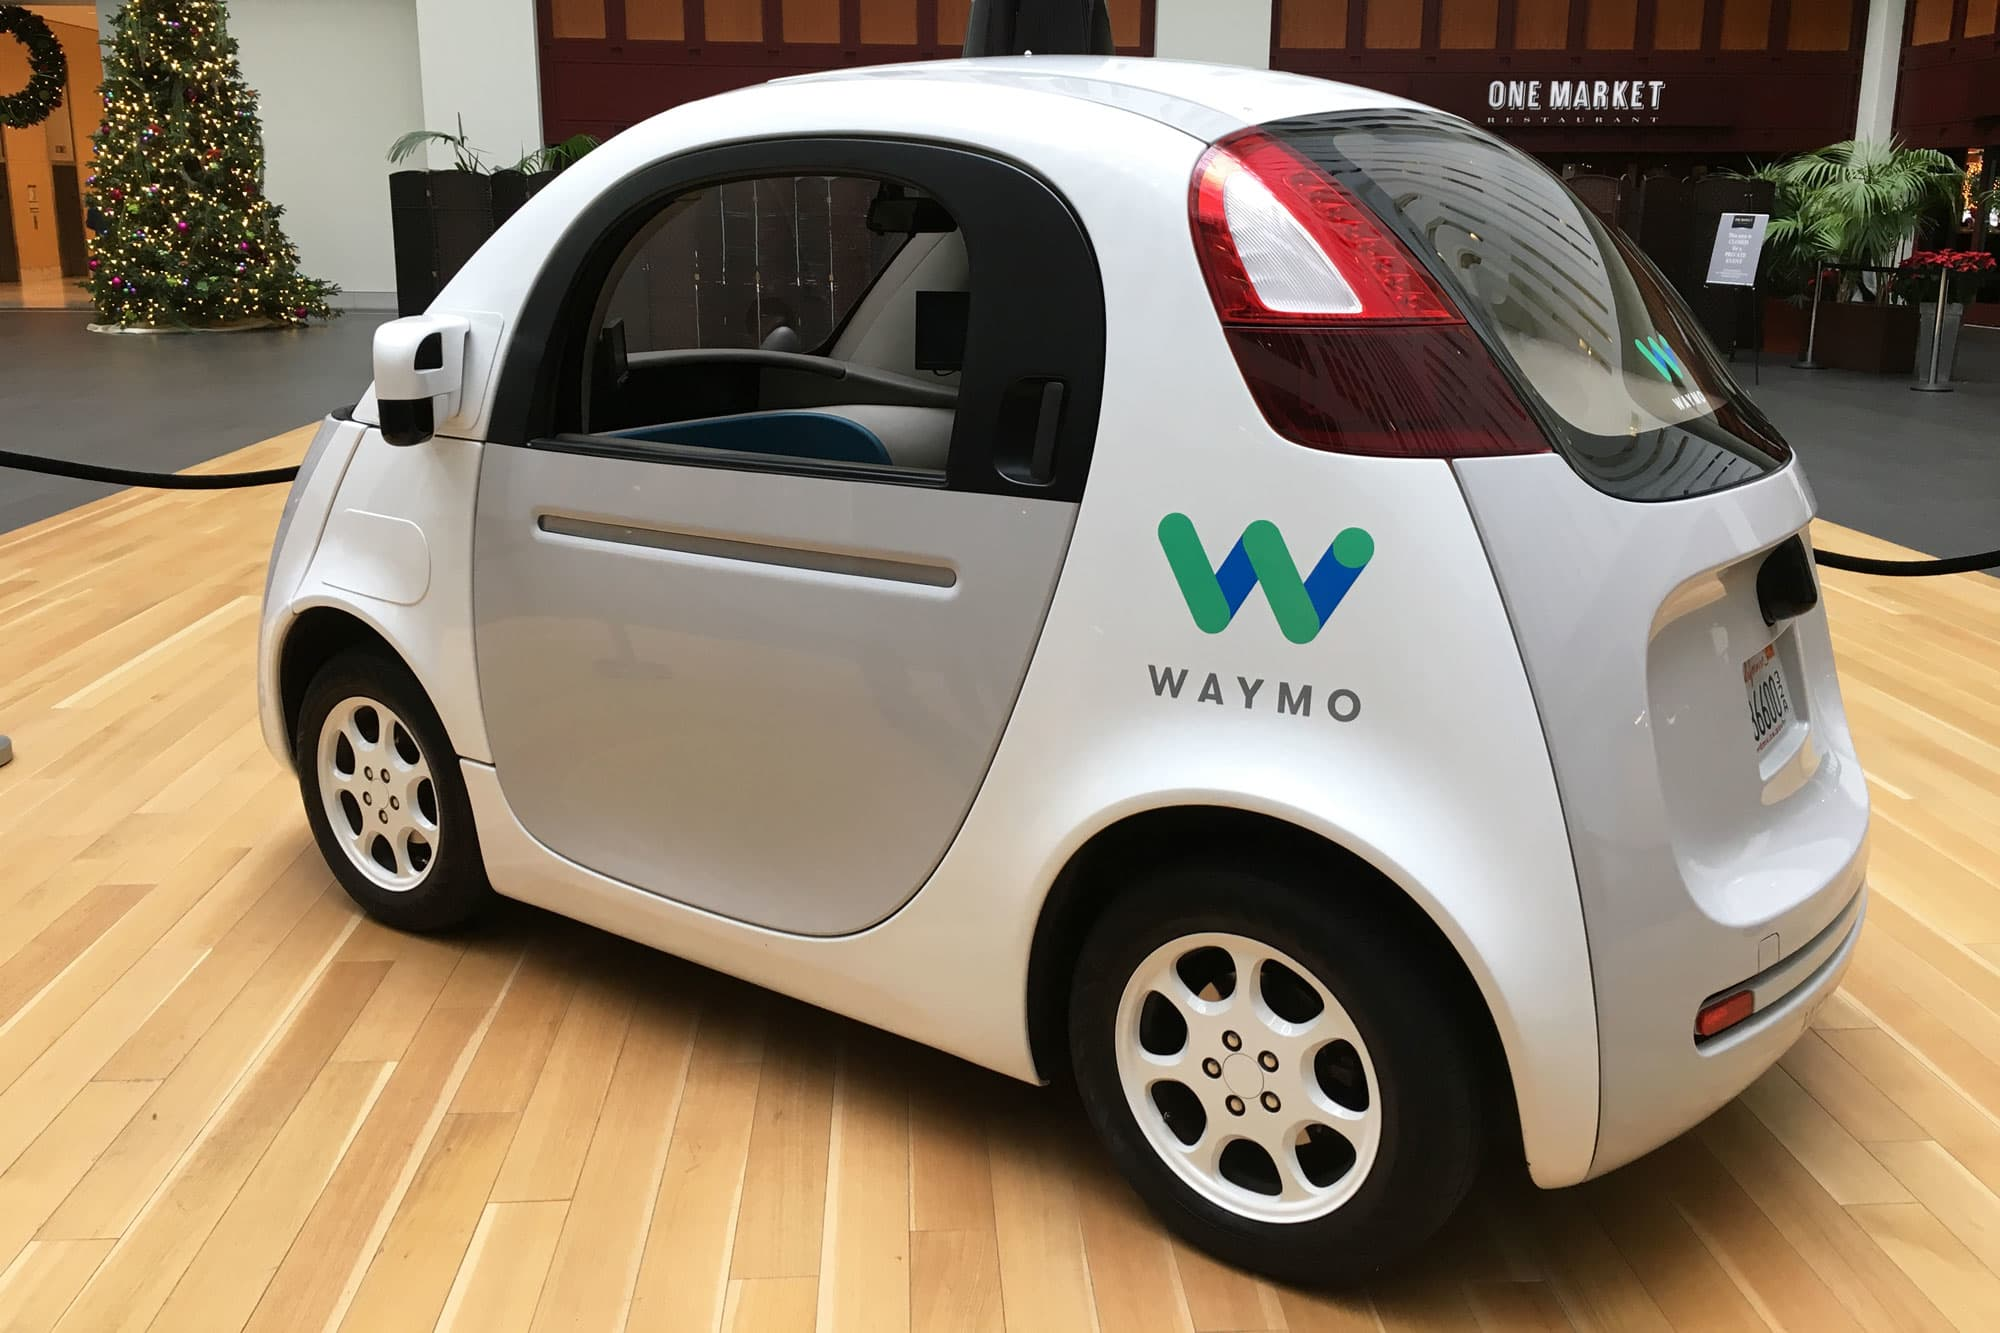 Alphabet exec blames media for overhyping self-driving cars, even though Google drove the hype